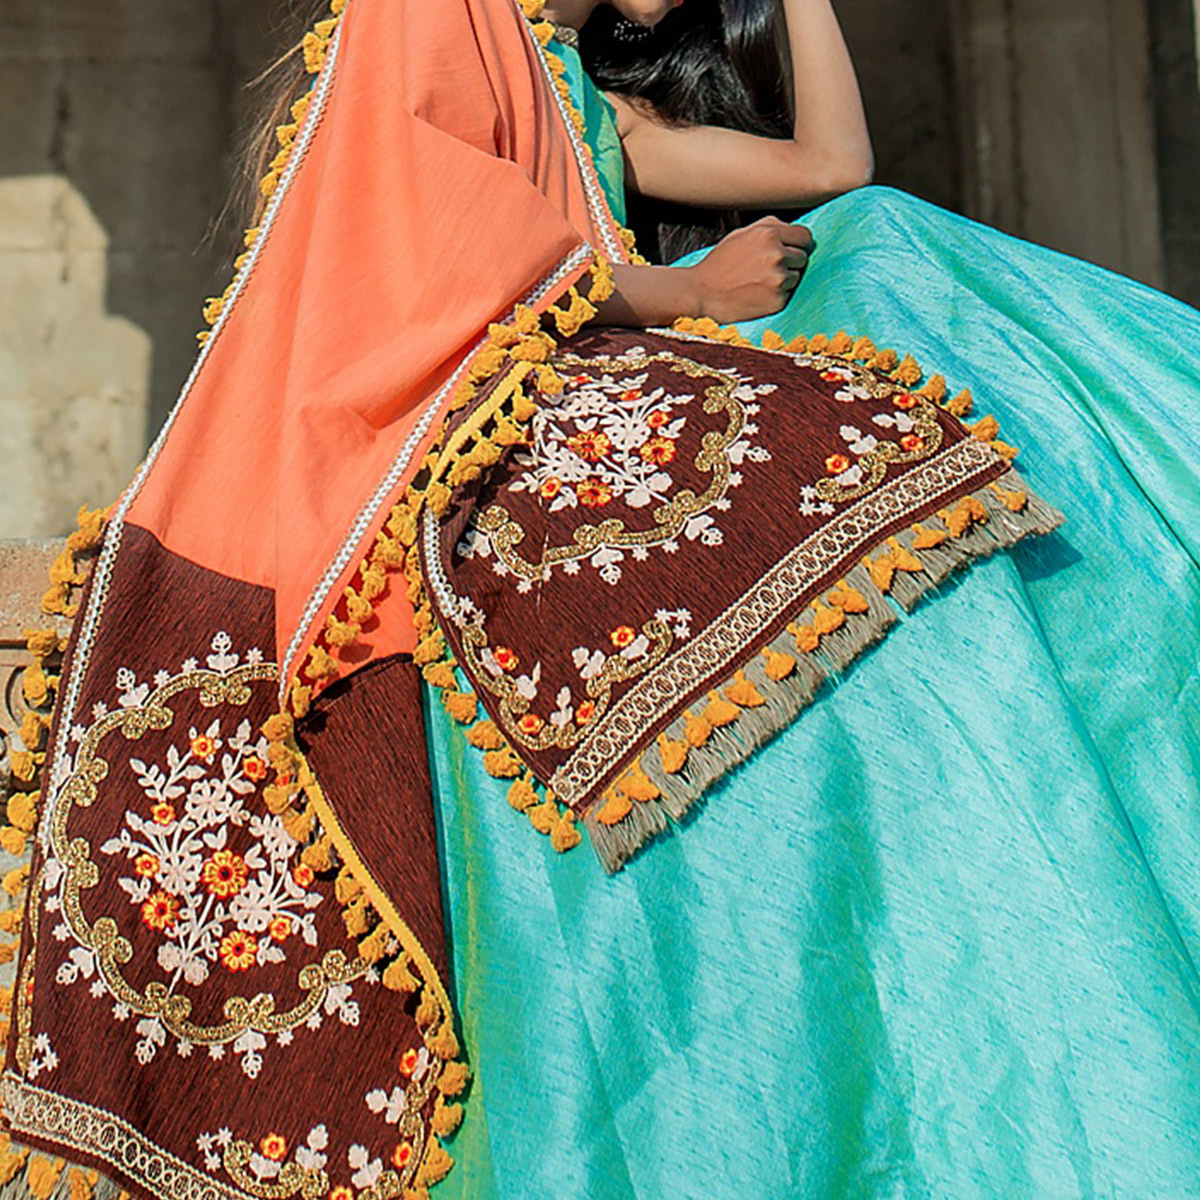 Magnetic Orange-Brown Colored Embroidered Khadi Cotton Dupatta